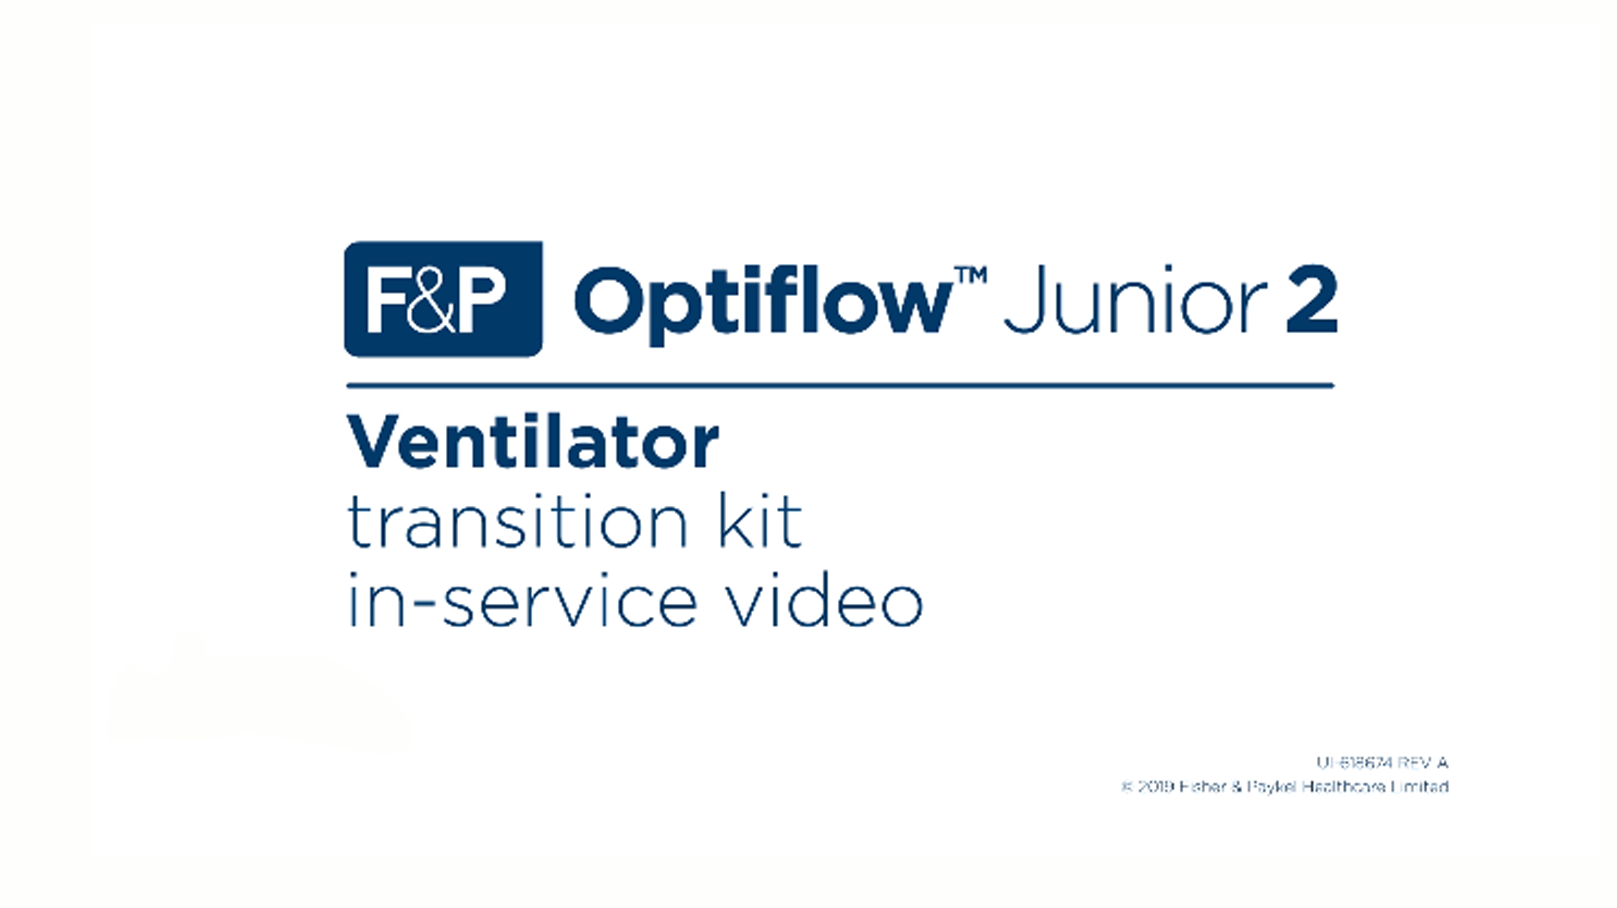 Optiflow Junior 2 Ventilation Transition Kit In-Service Video